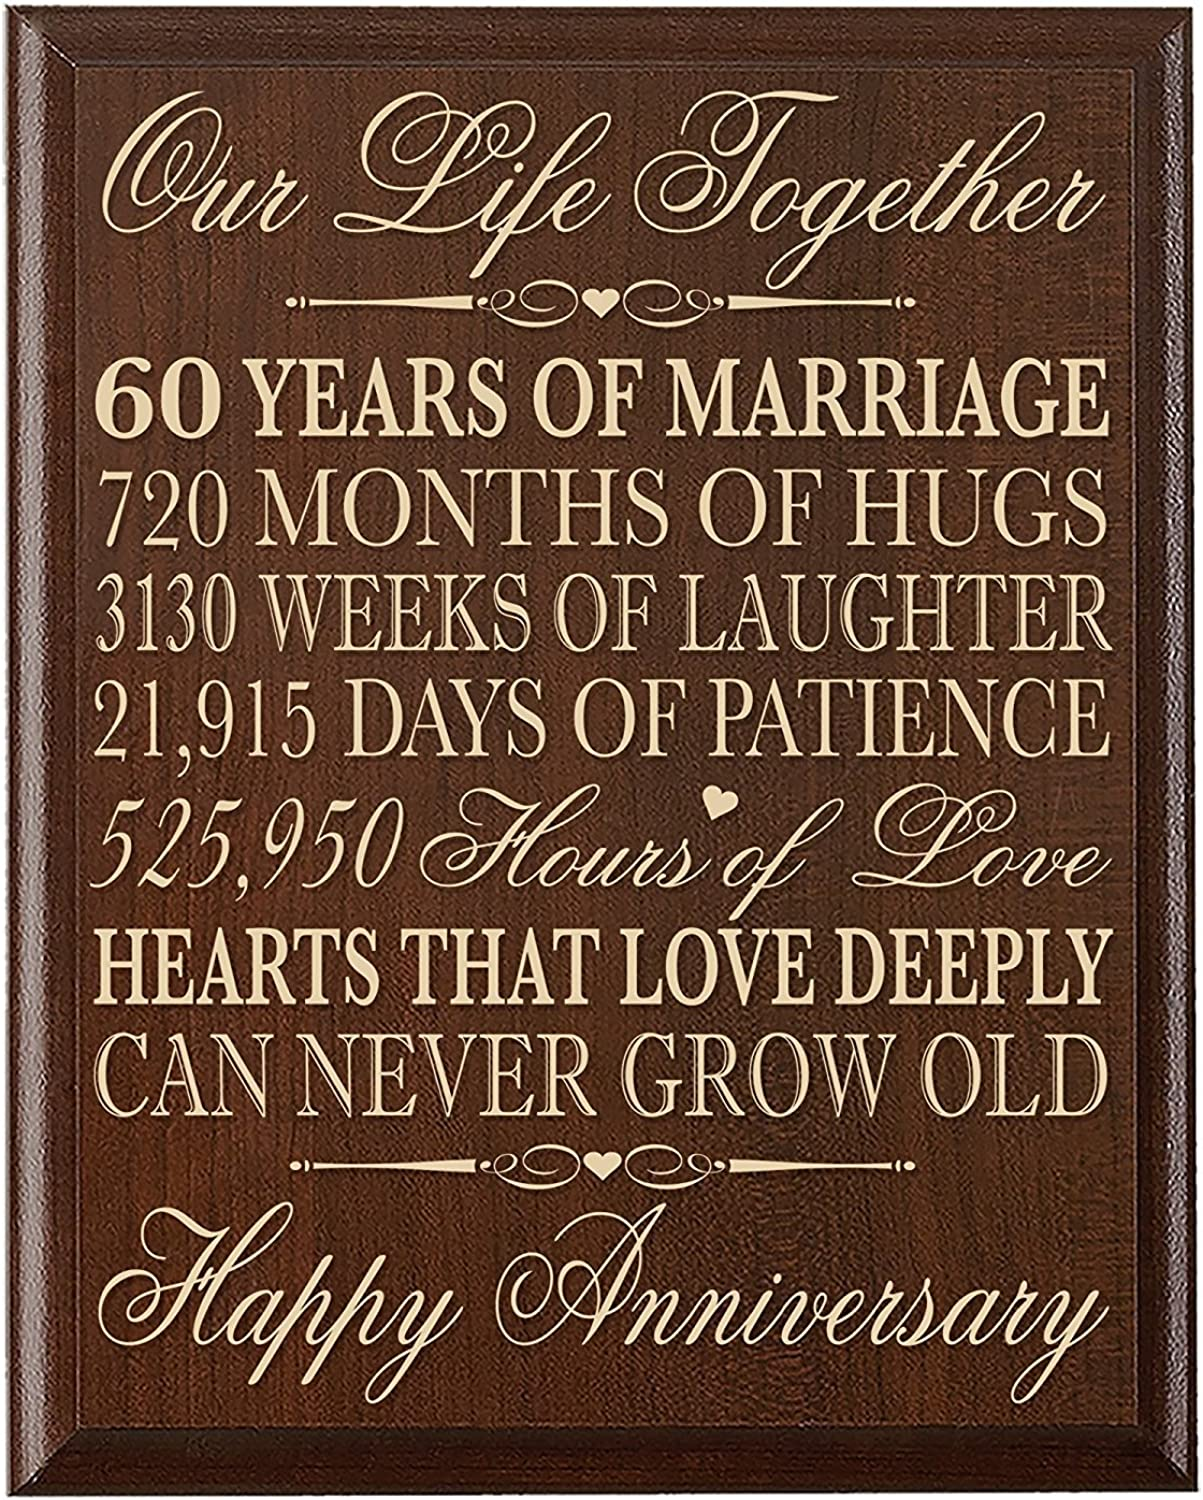 LifeSong Milestones 60th Wedding Anniversary Wall Plaque Gifts for Couple, 60th Anniversary Gifts for Her,60th Wedding Anniversary Gifts for Him 12  W X 15  H Wall Plaque By